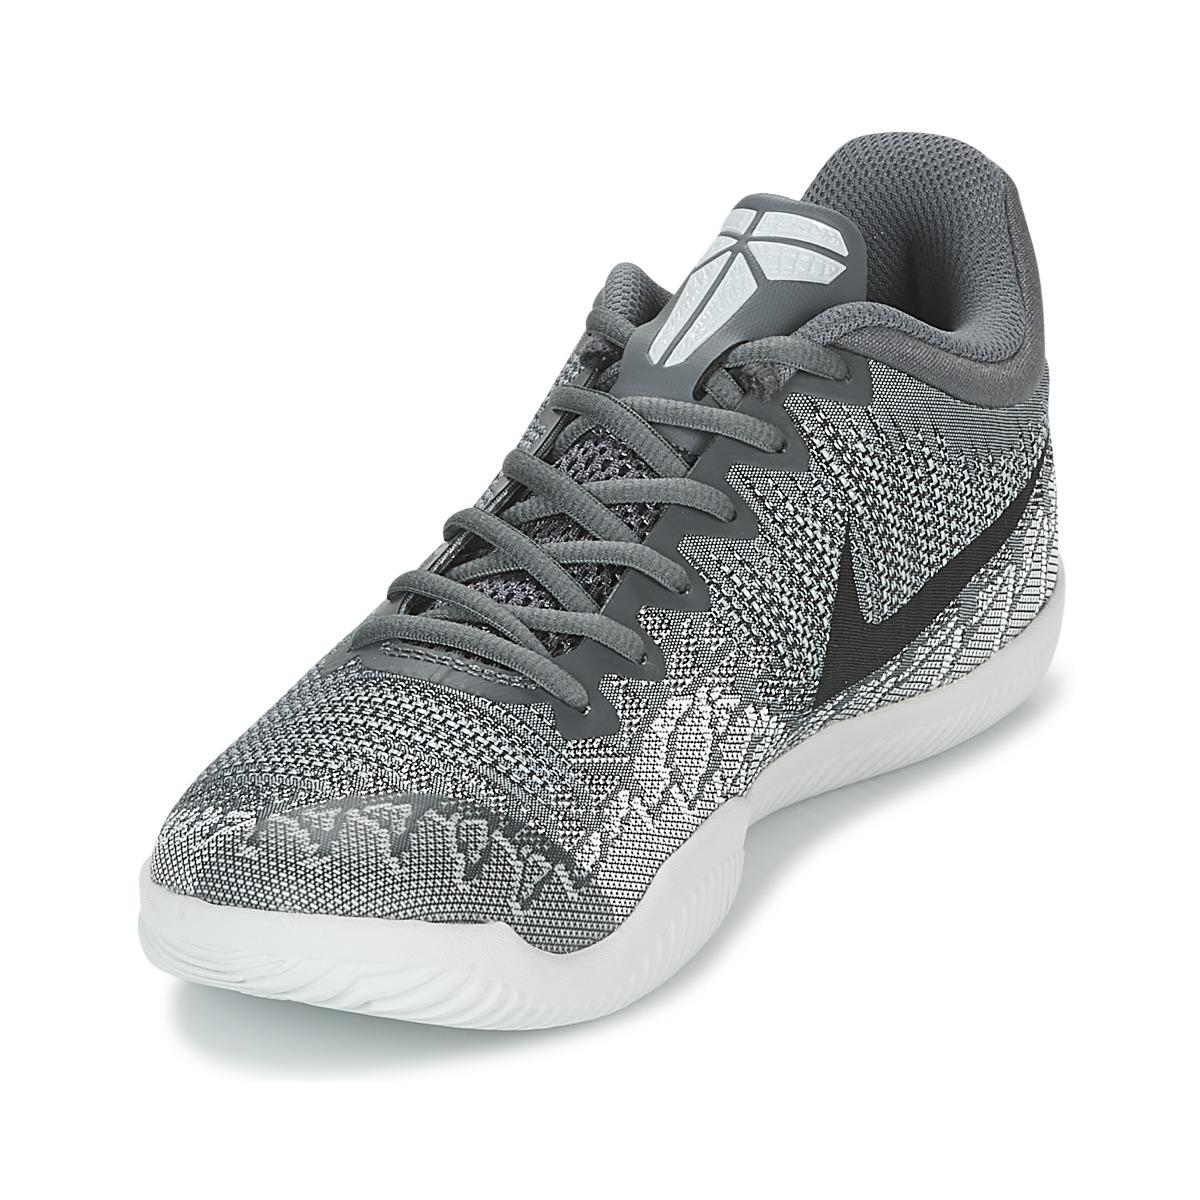 8a4bd6a5494 Nike Mamba Rage Men s Basketball Trainers (shoes) In Grey in Gray ...